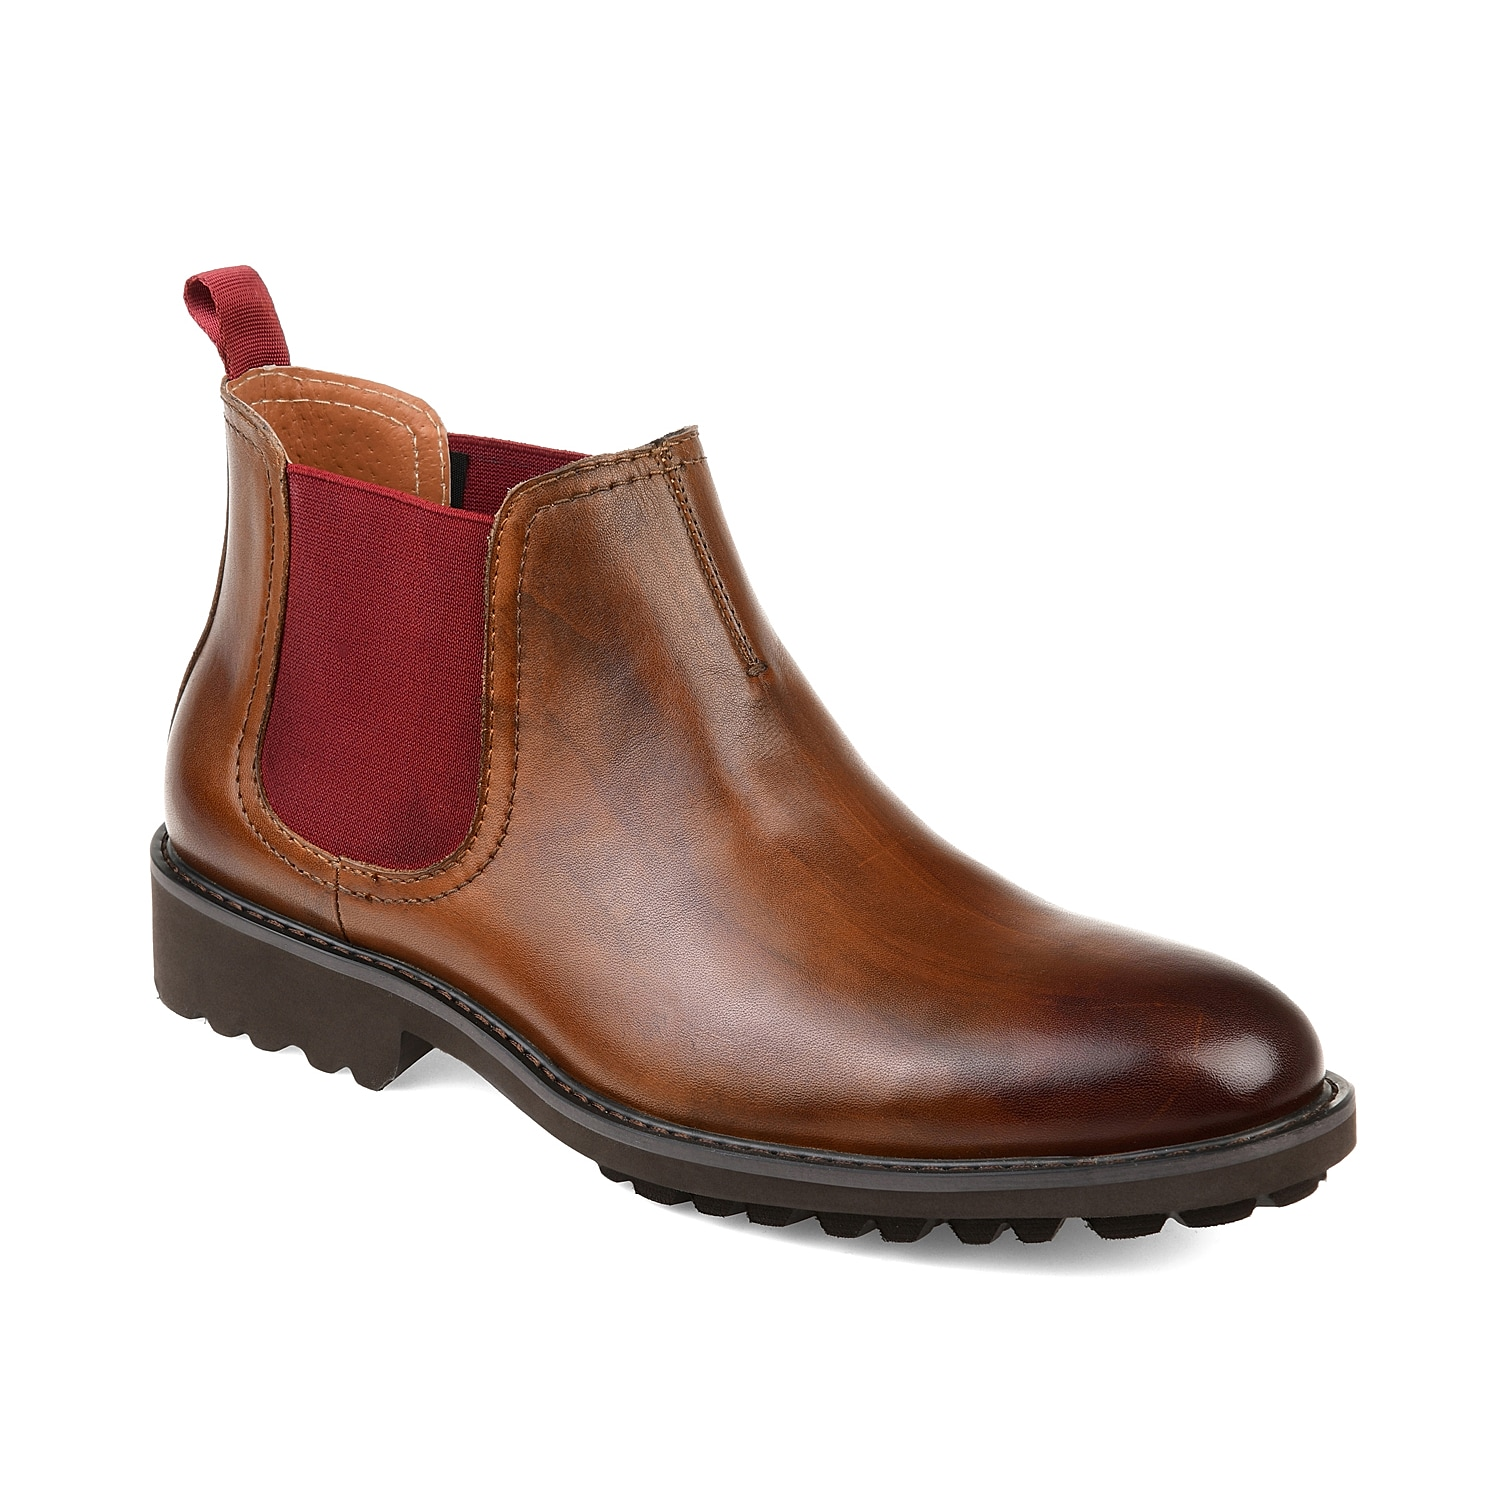 Leave your feet right at ease when wearing the Maddox boot from Thomas & Vine. The Chelsea-inspired styling and clean, leather construction will go great with cuffed jeans and an open-faced flannel!